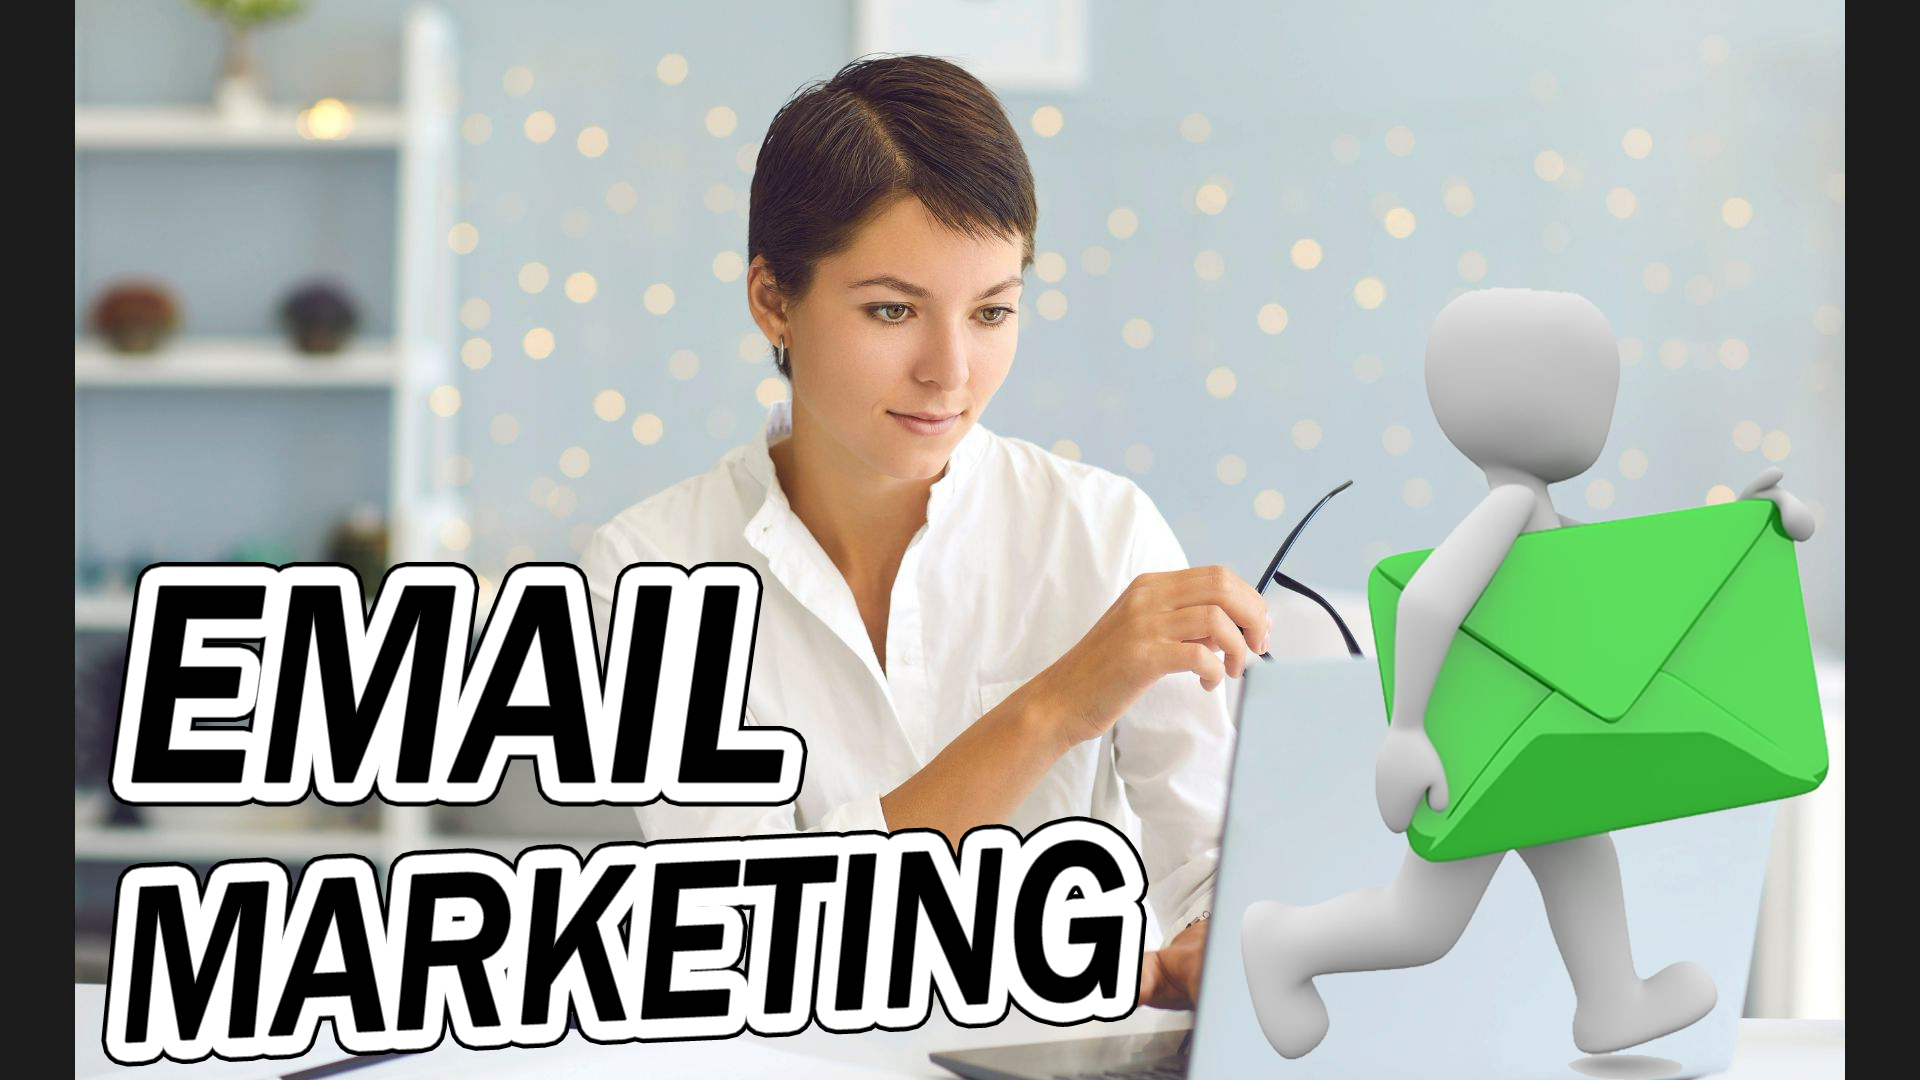 Targeted 100+ Active Email List For Email Marketing